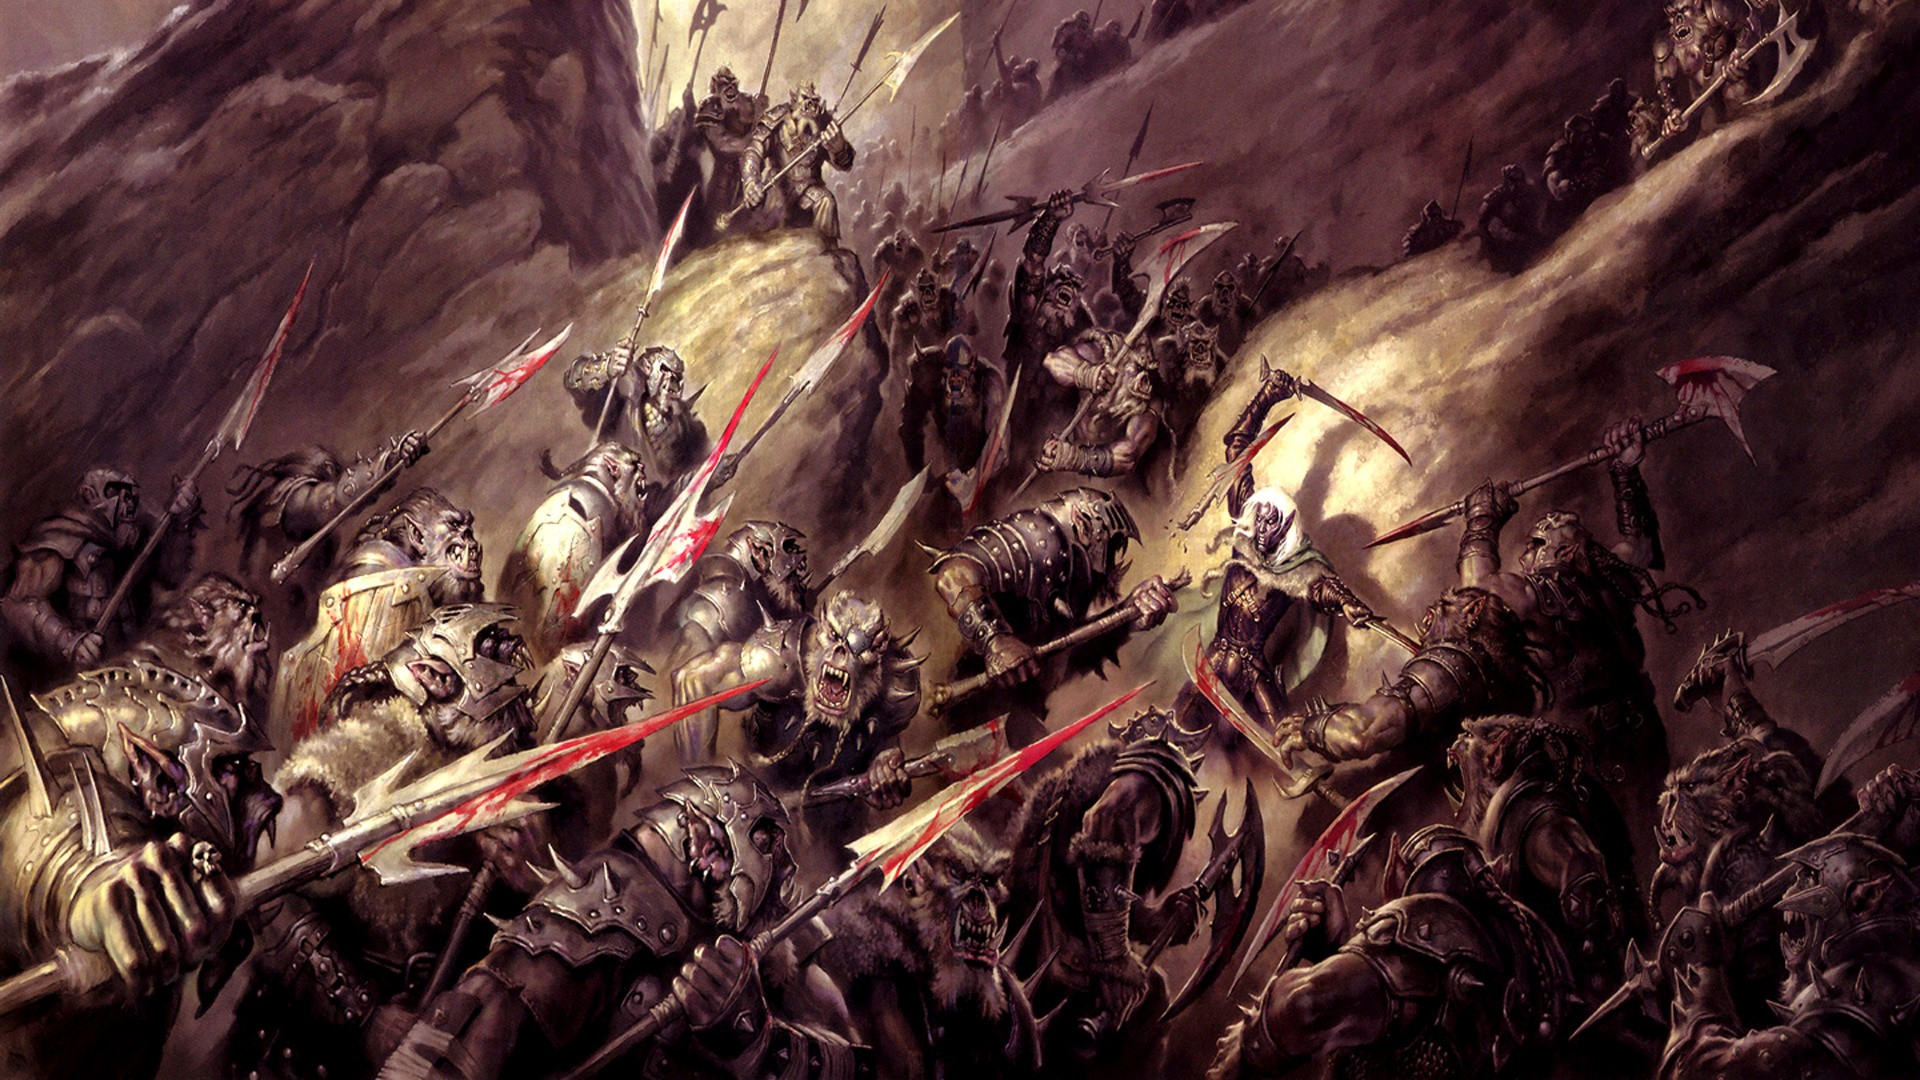 fantasy art armor dnd orcs axes dungeons and dragons spears drizzt 1920x1080